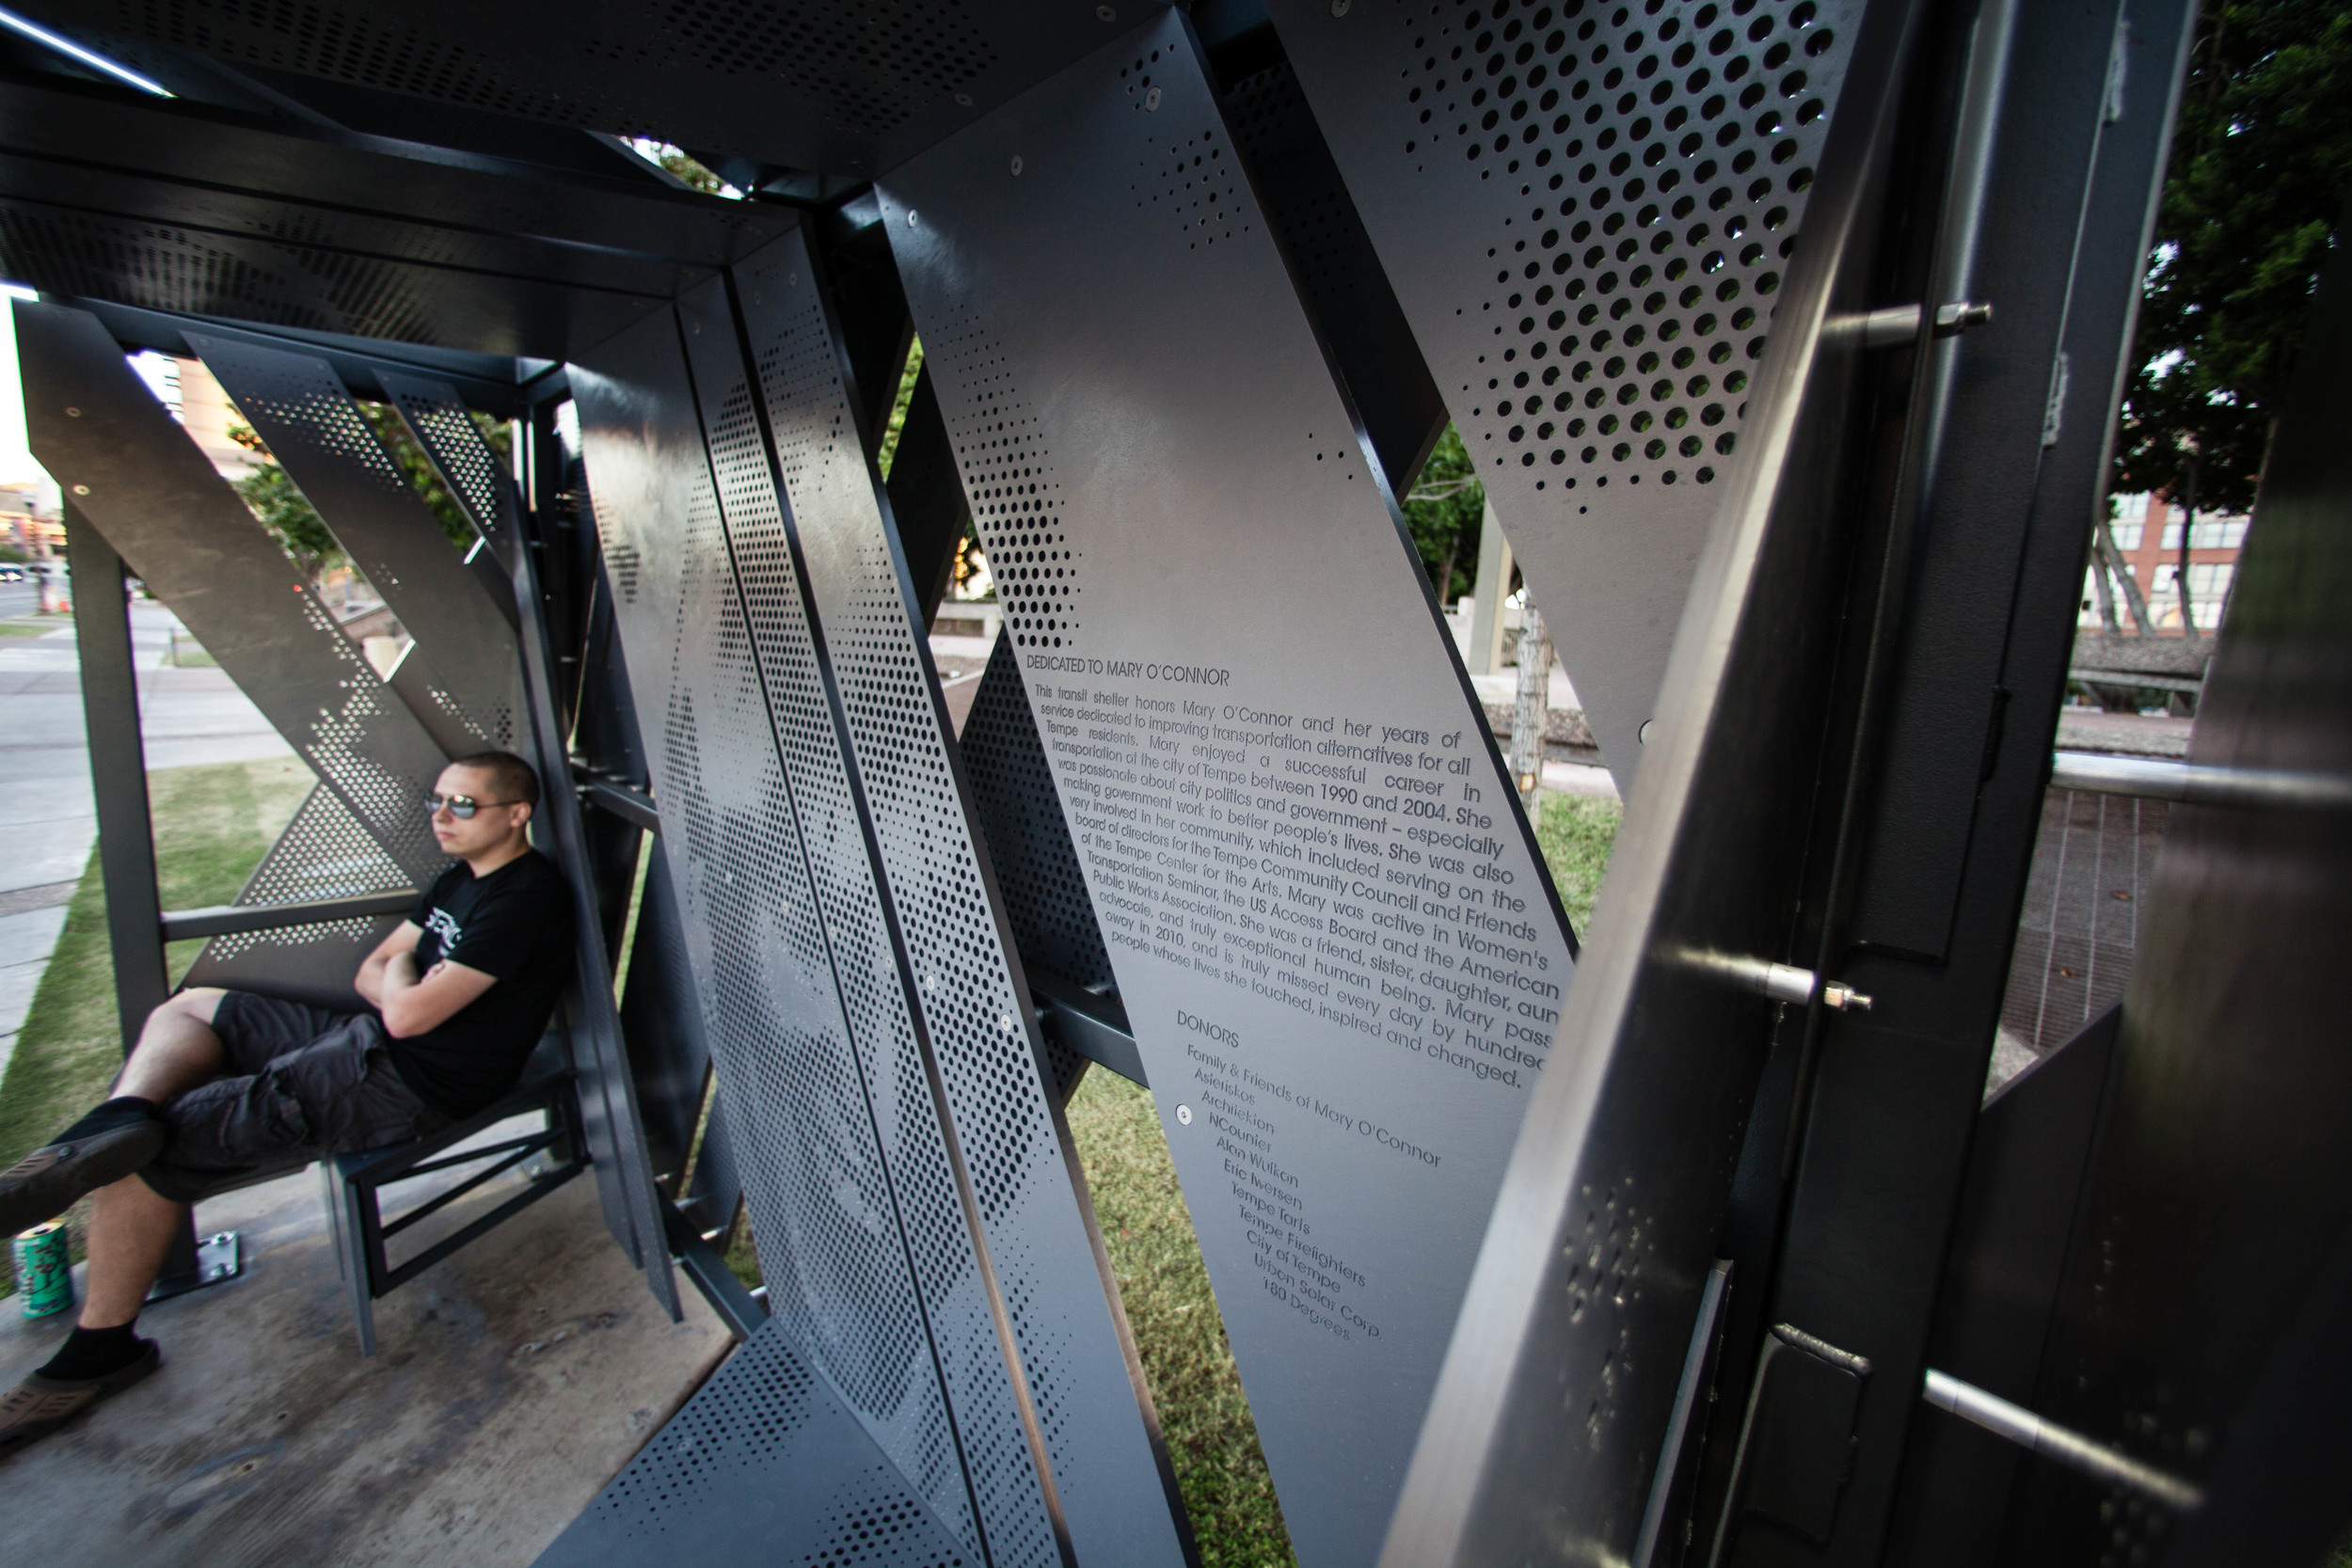 Memorial-transit-shelter-asteriskos-digital-fabrication-tempe.-floating-bench.jpg